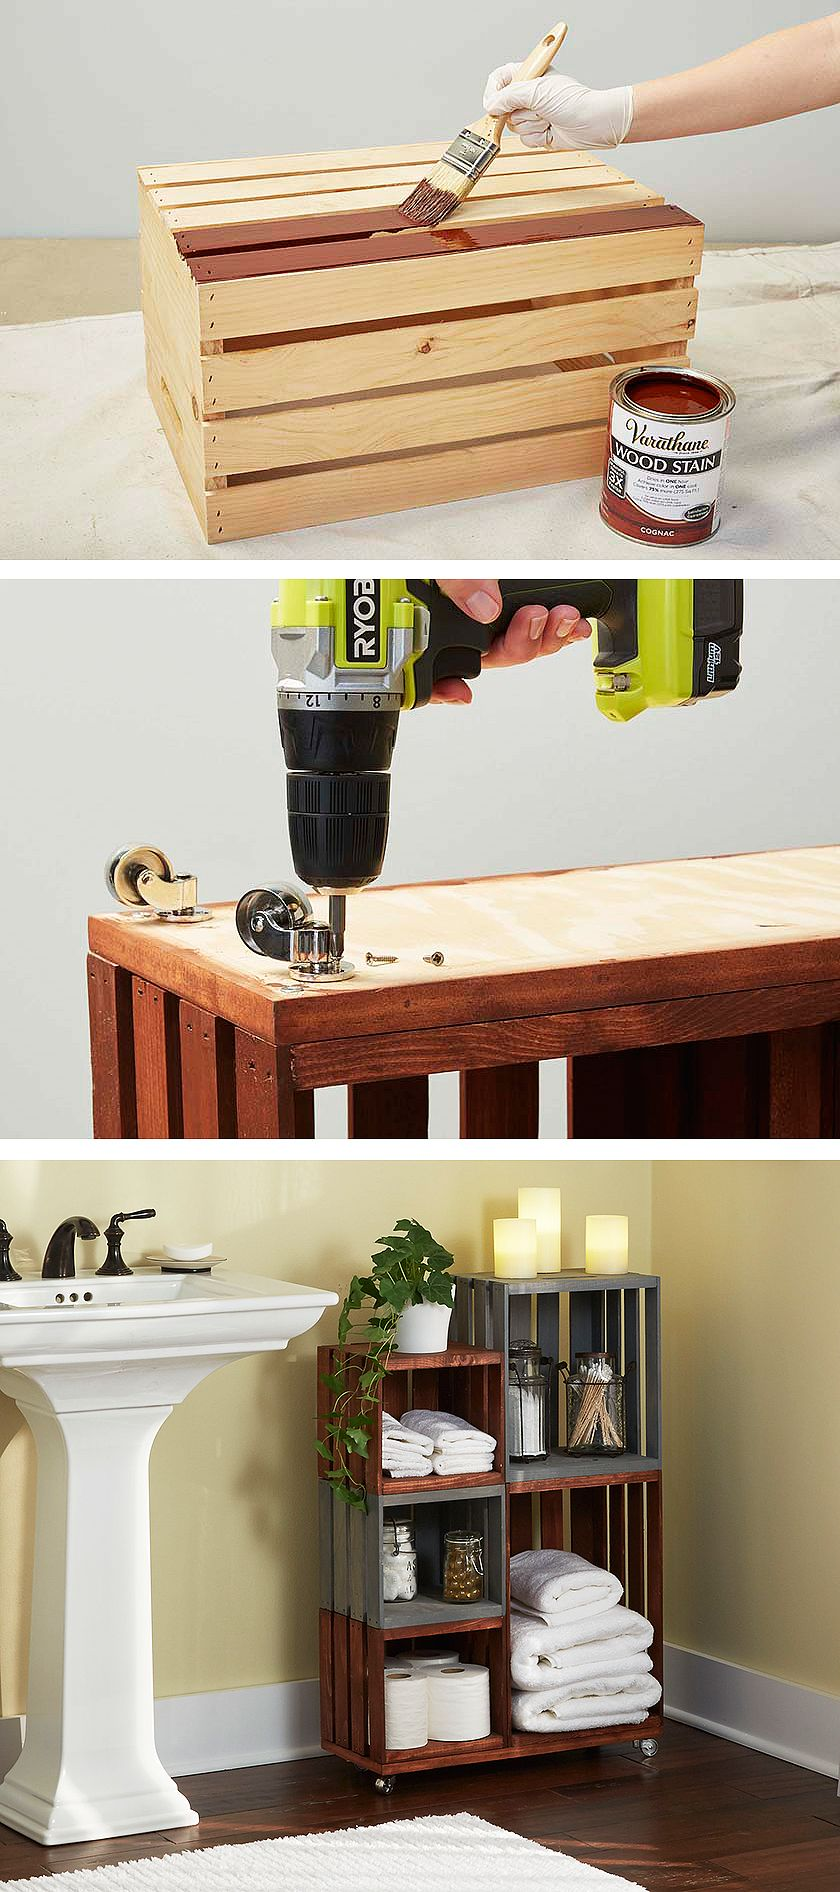 Turn ordinary wooden crates into cool bathroom